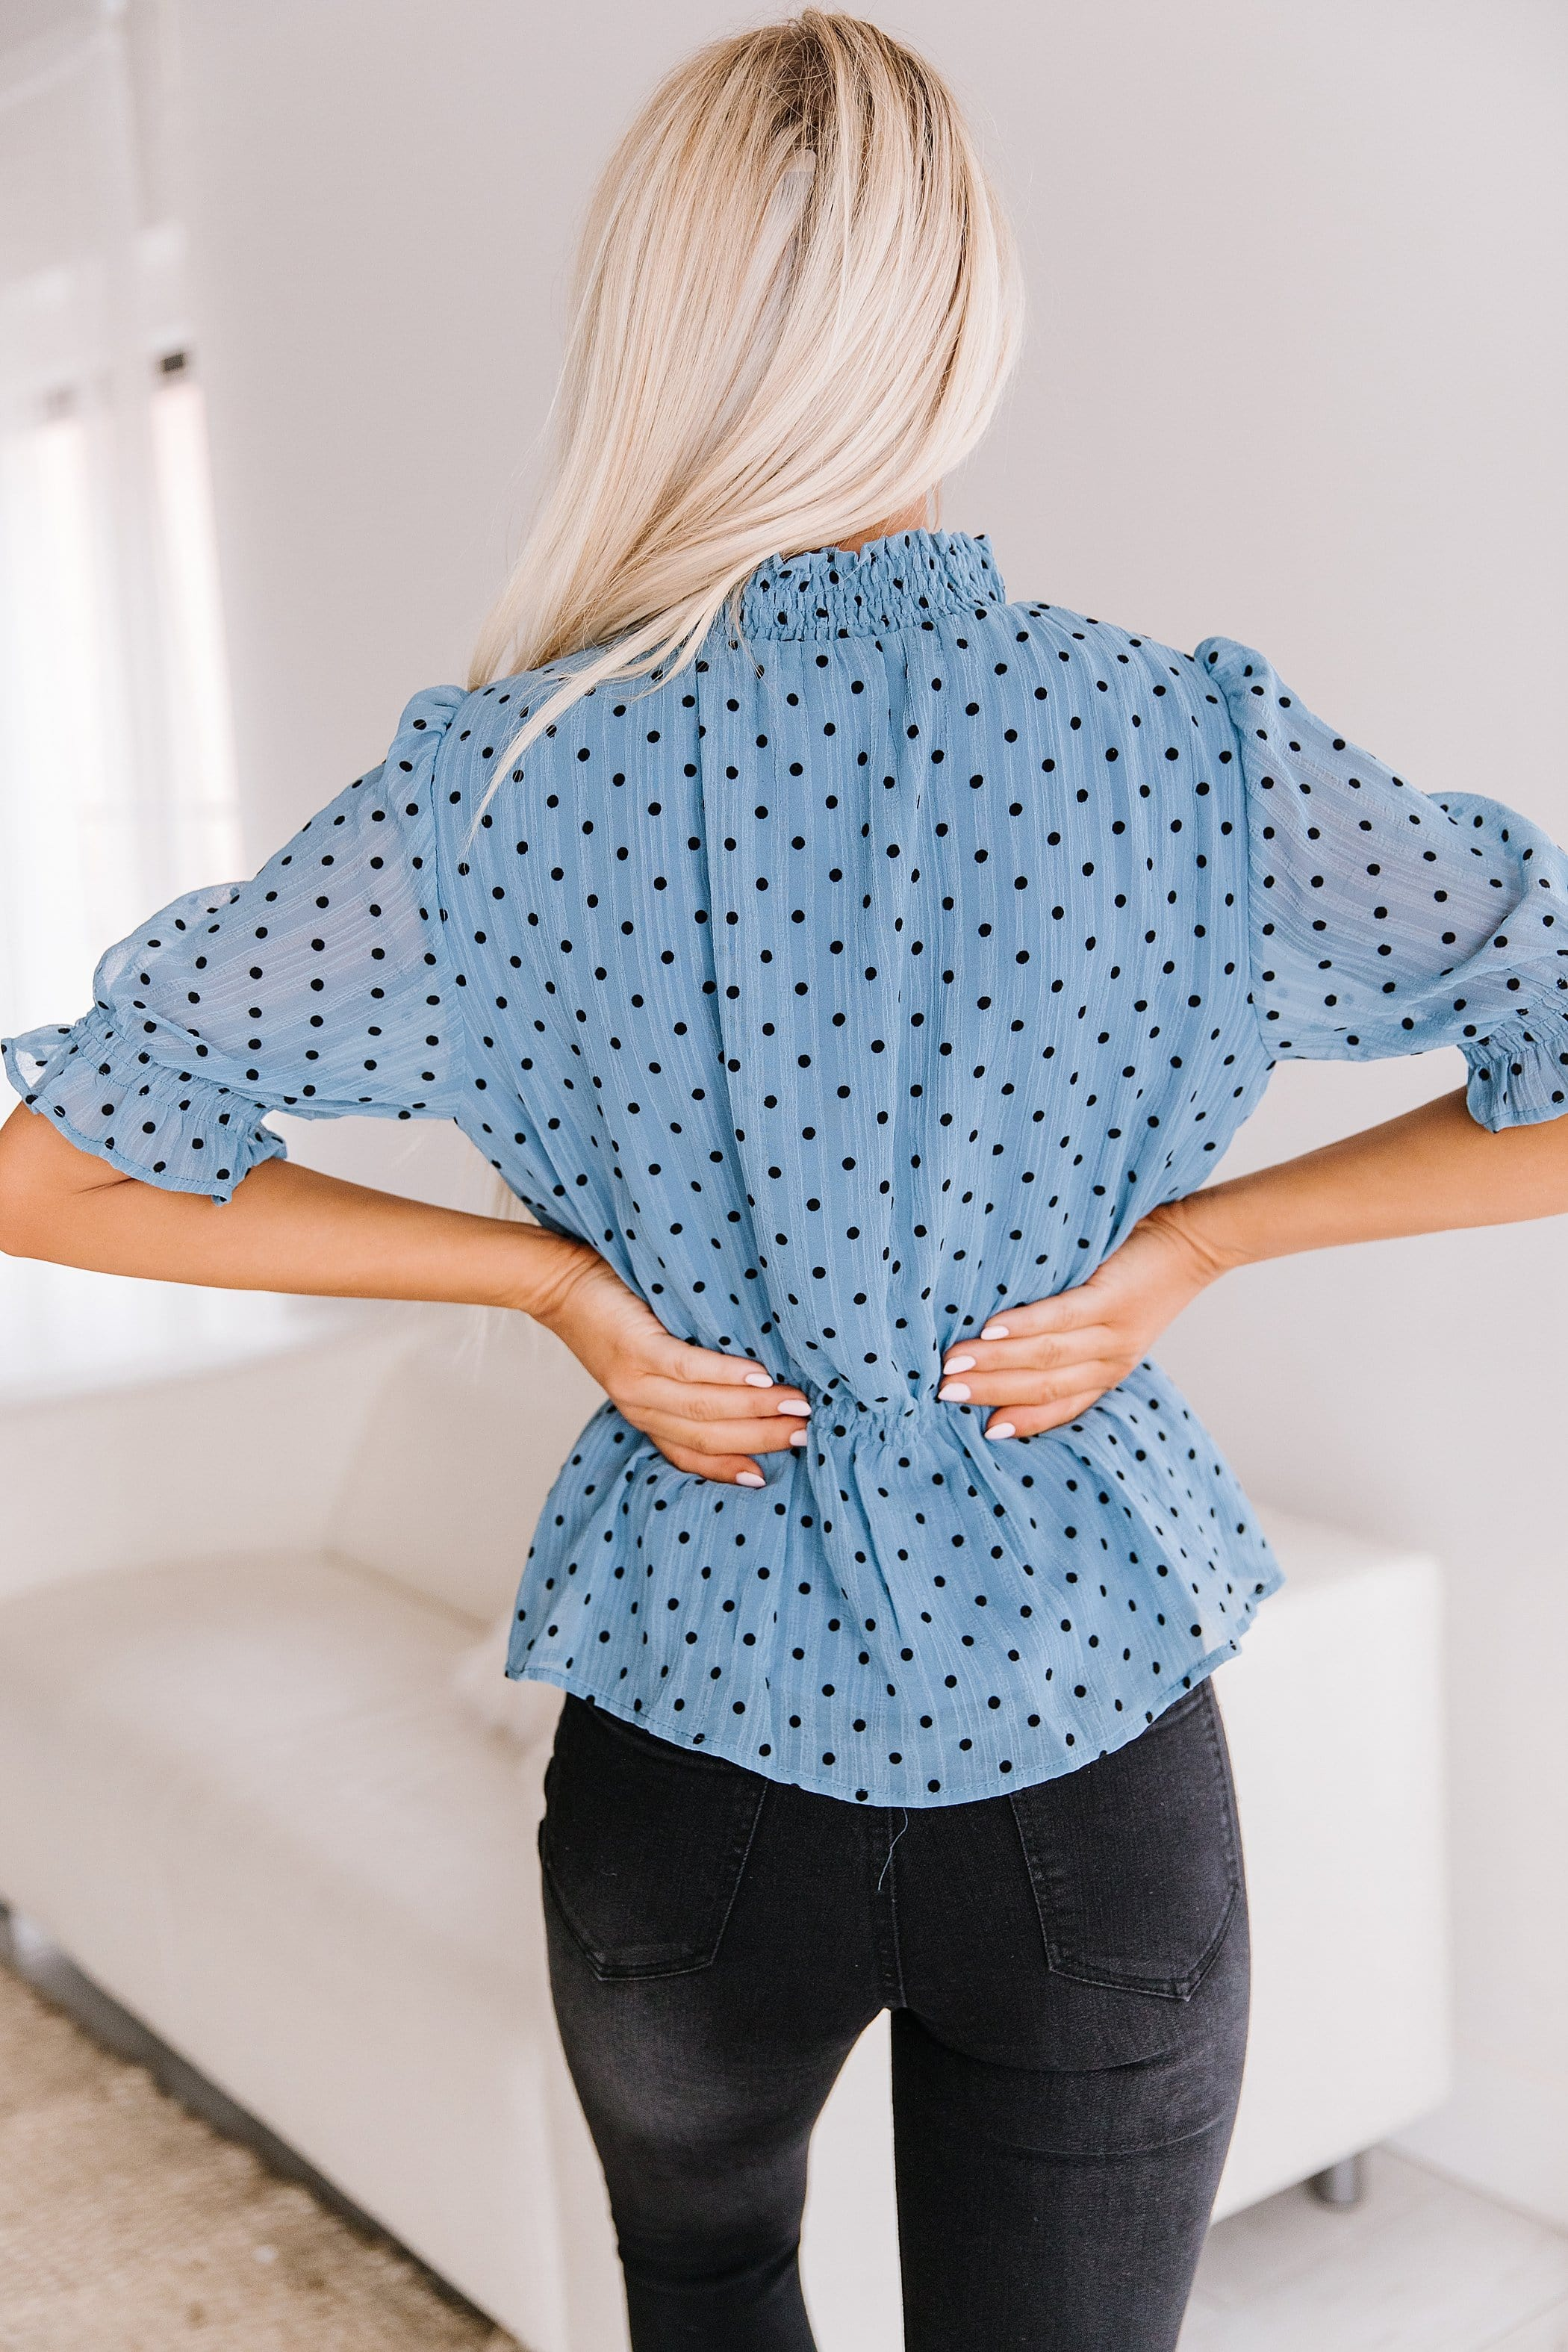 The Marta Polka Dot Peplum Top in Indigo